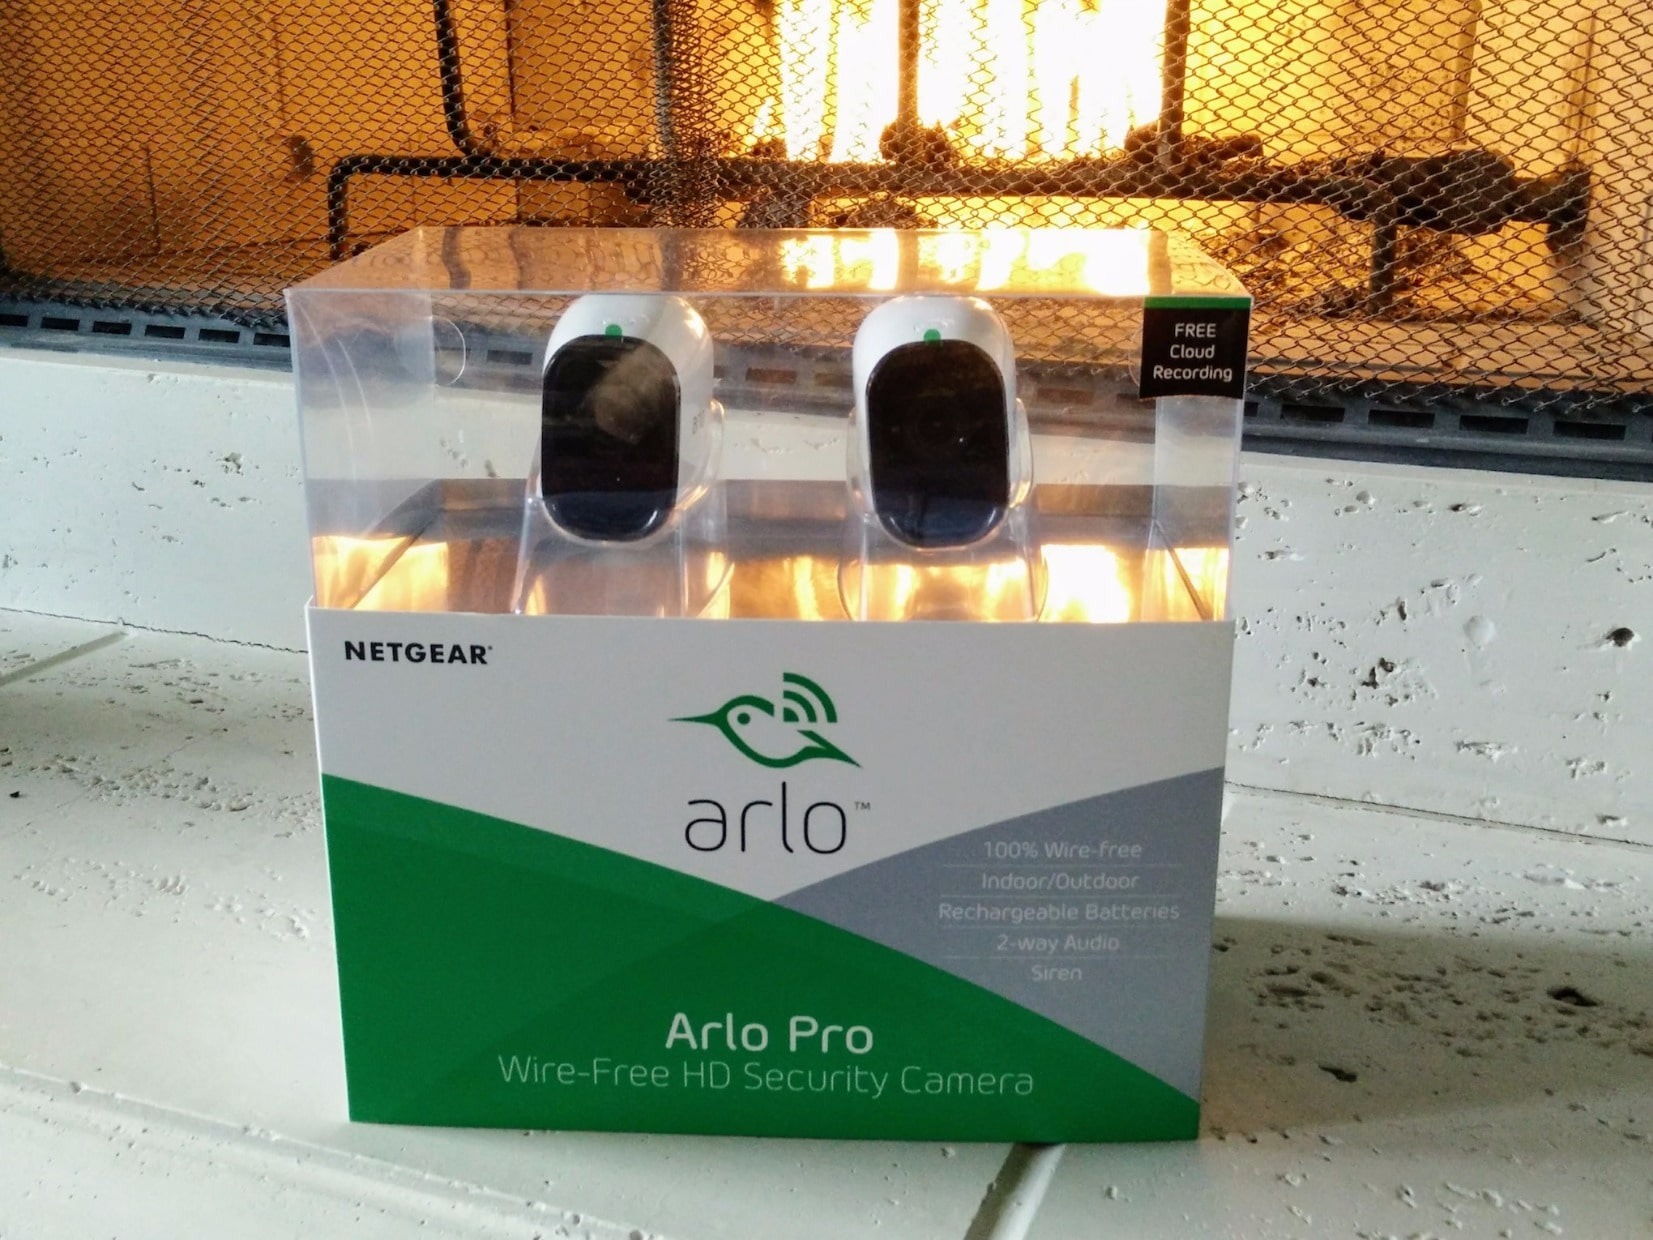 hight resolution of netgear arlo pro review boxed home security surveillance camera